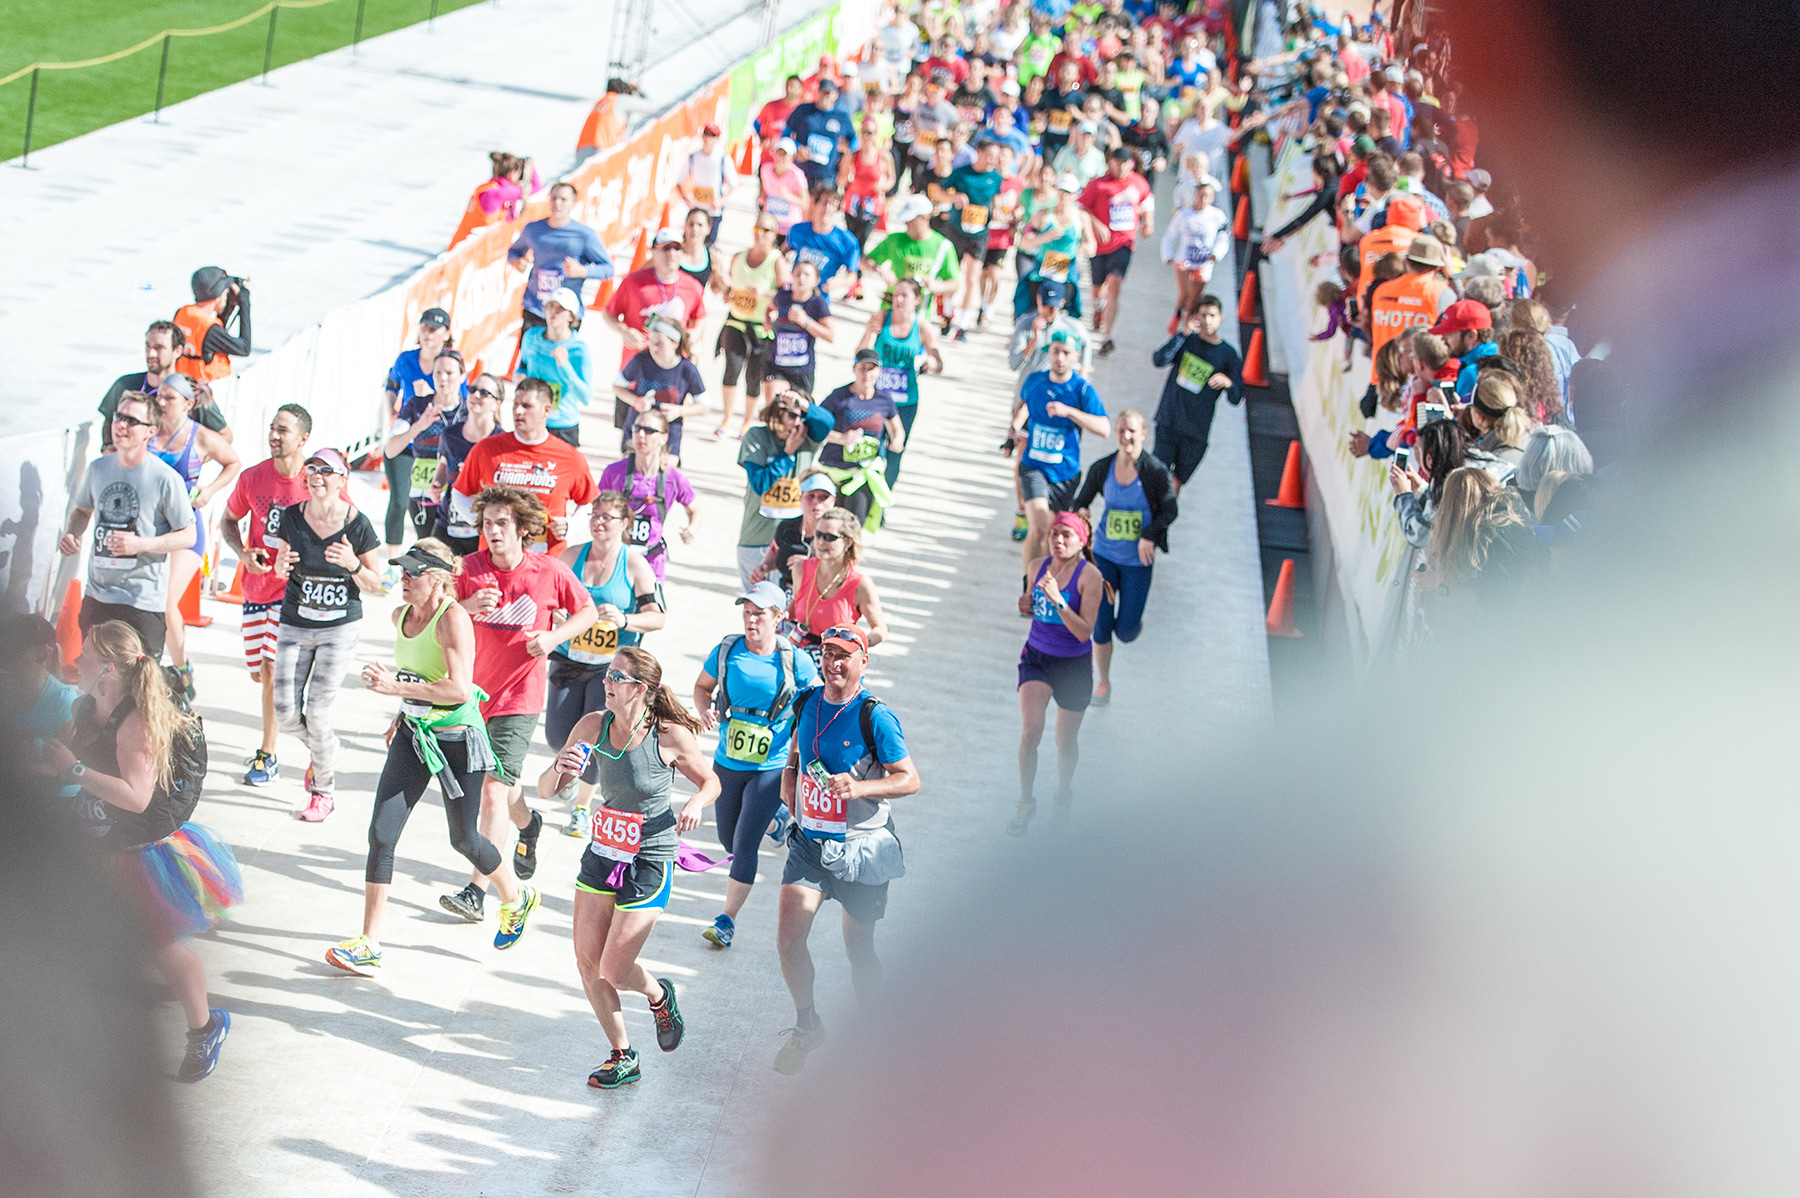 Gameface-BolderBoulder-HighRes-136